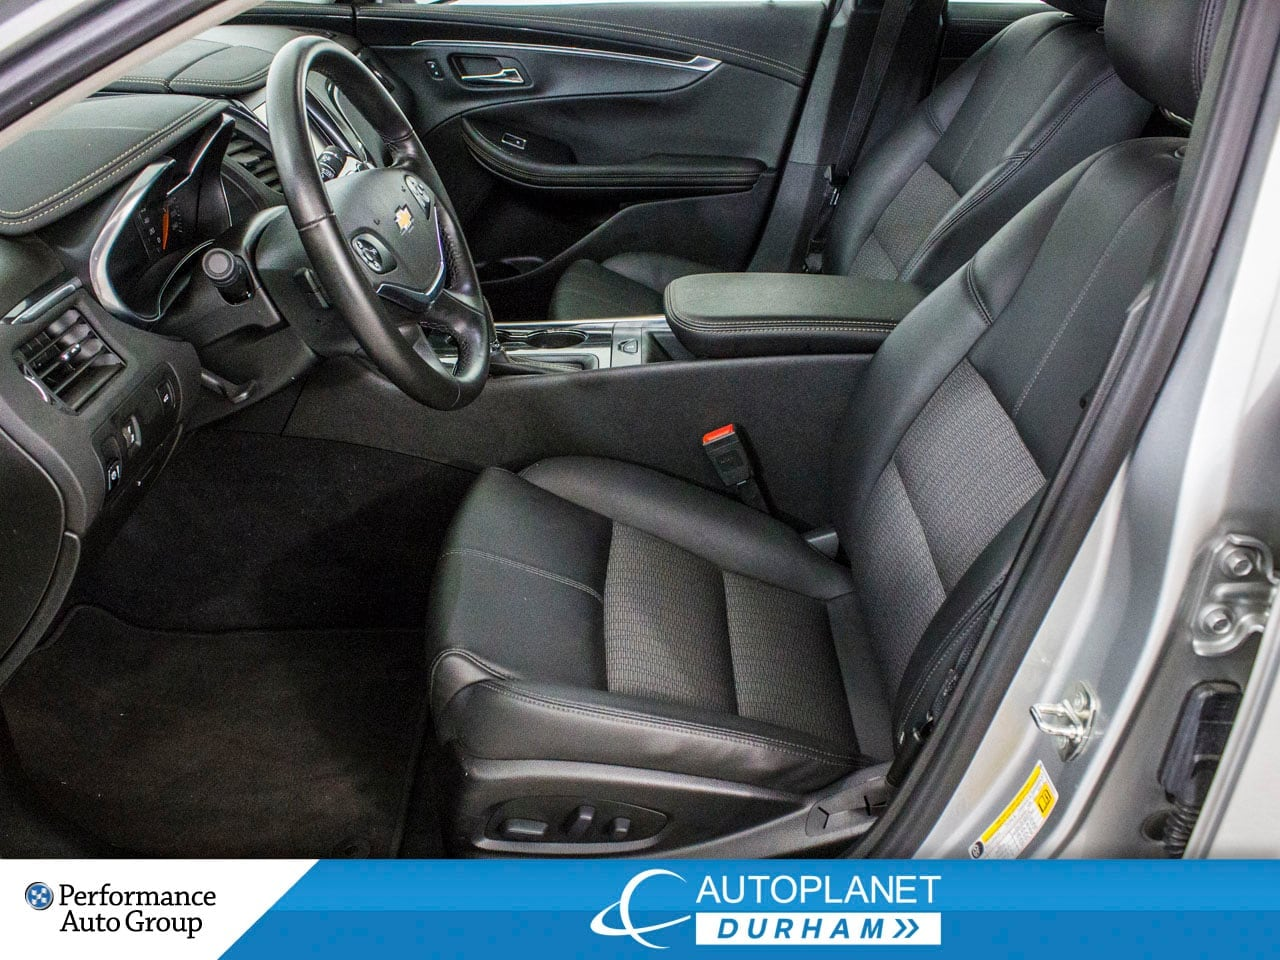 Used 2019 Chevrolet Impala For Sale at Performance Auto